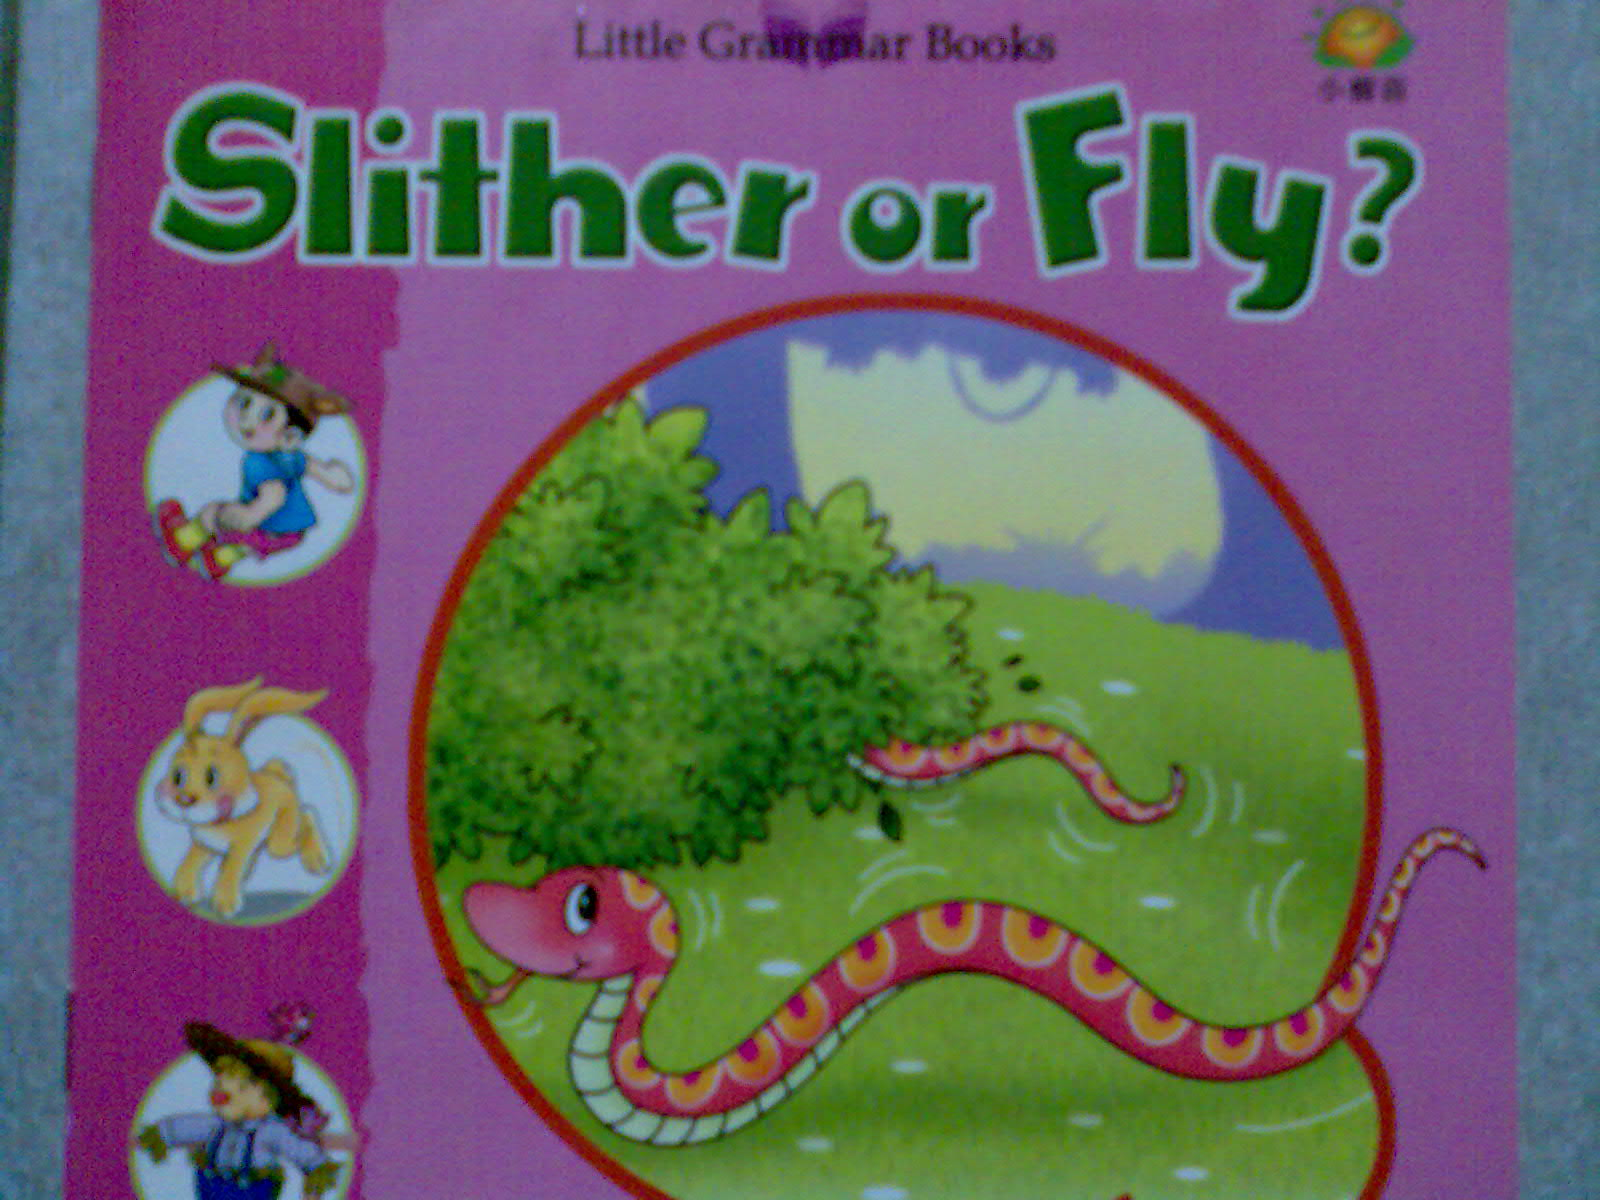 Slither or fly?